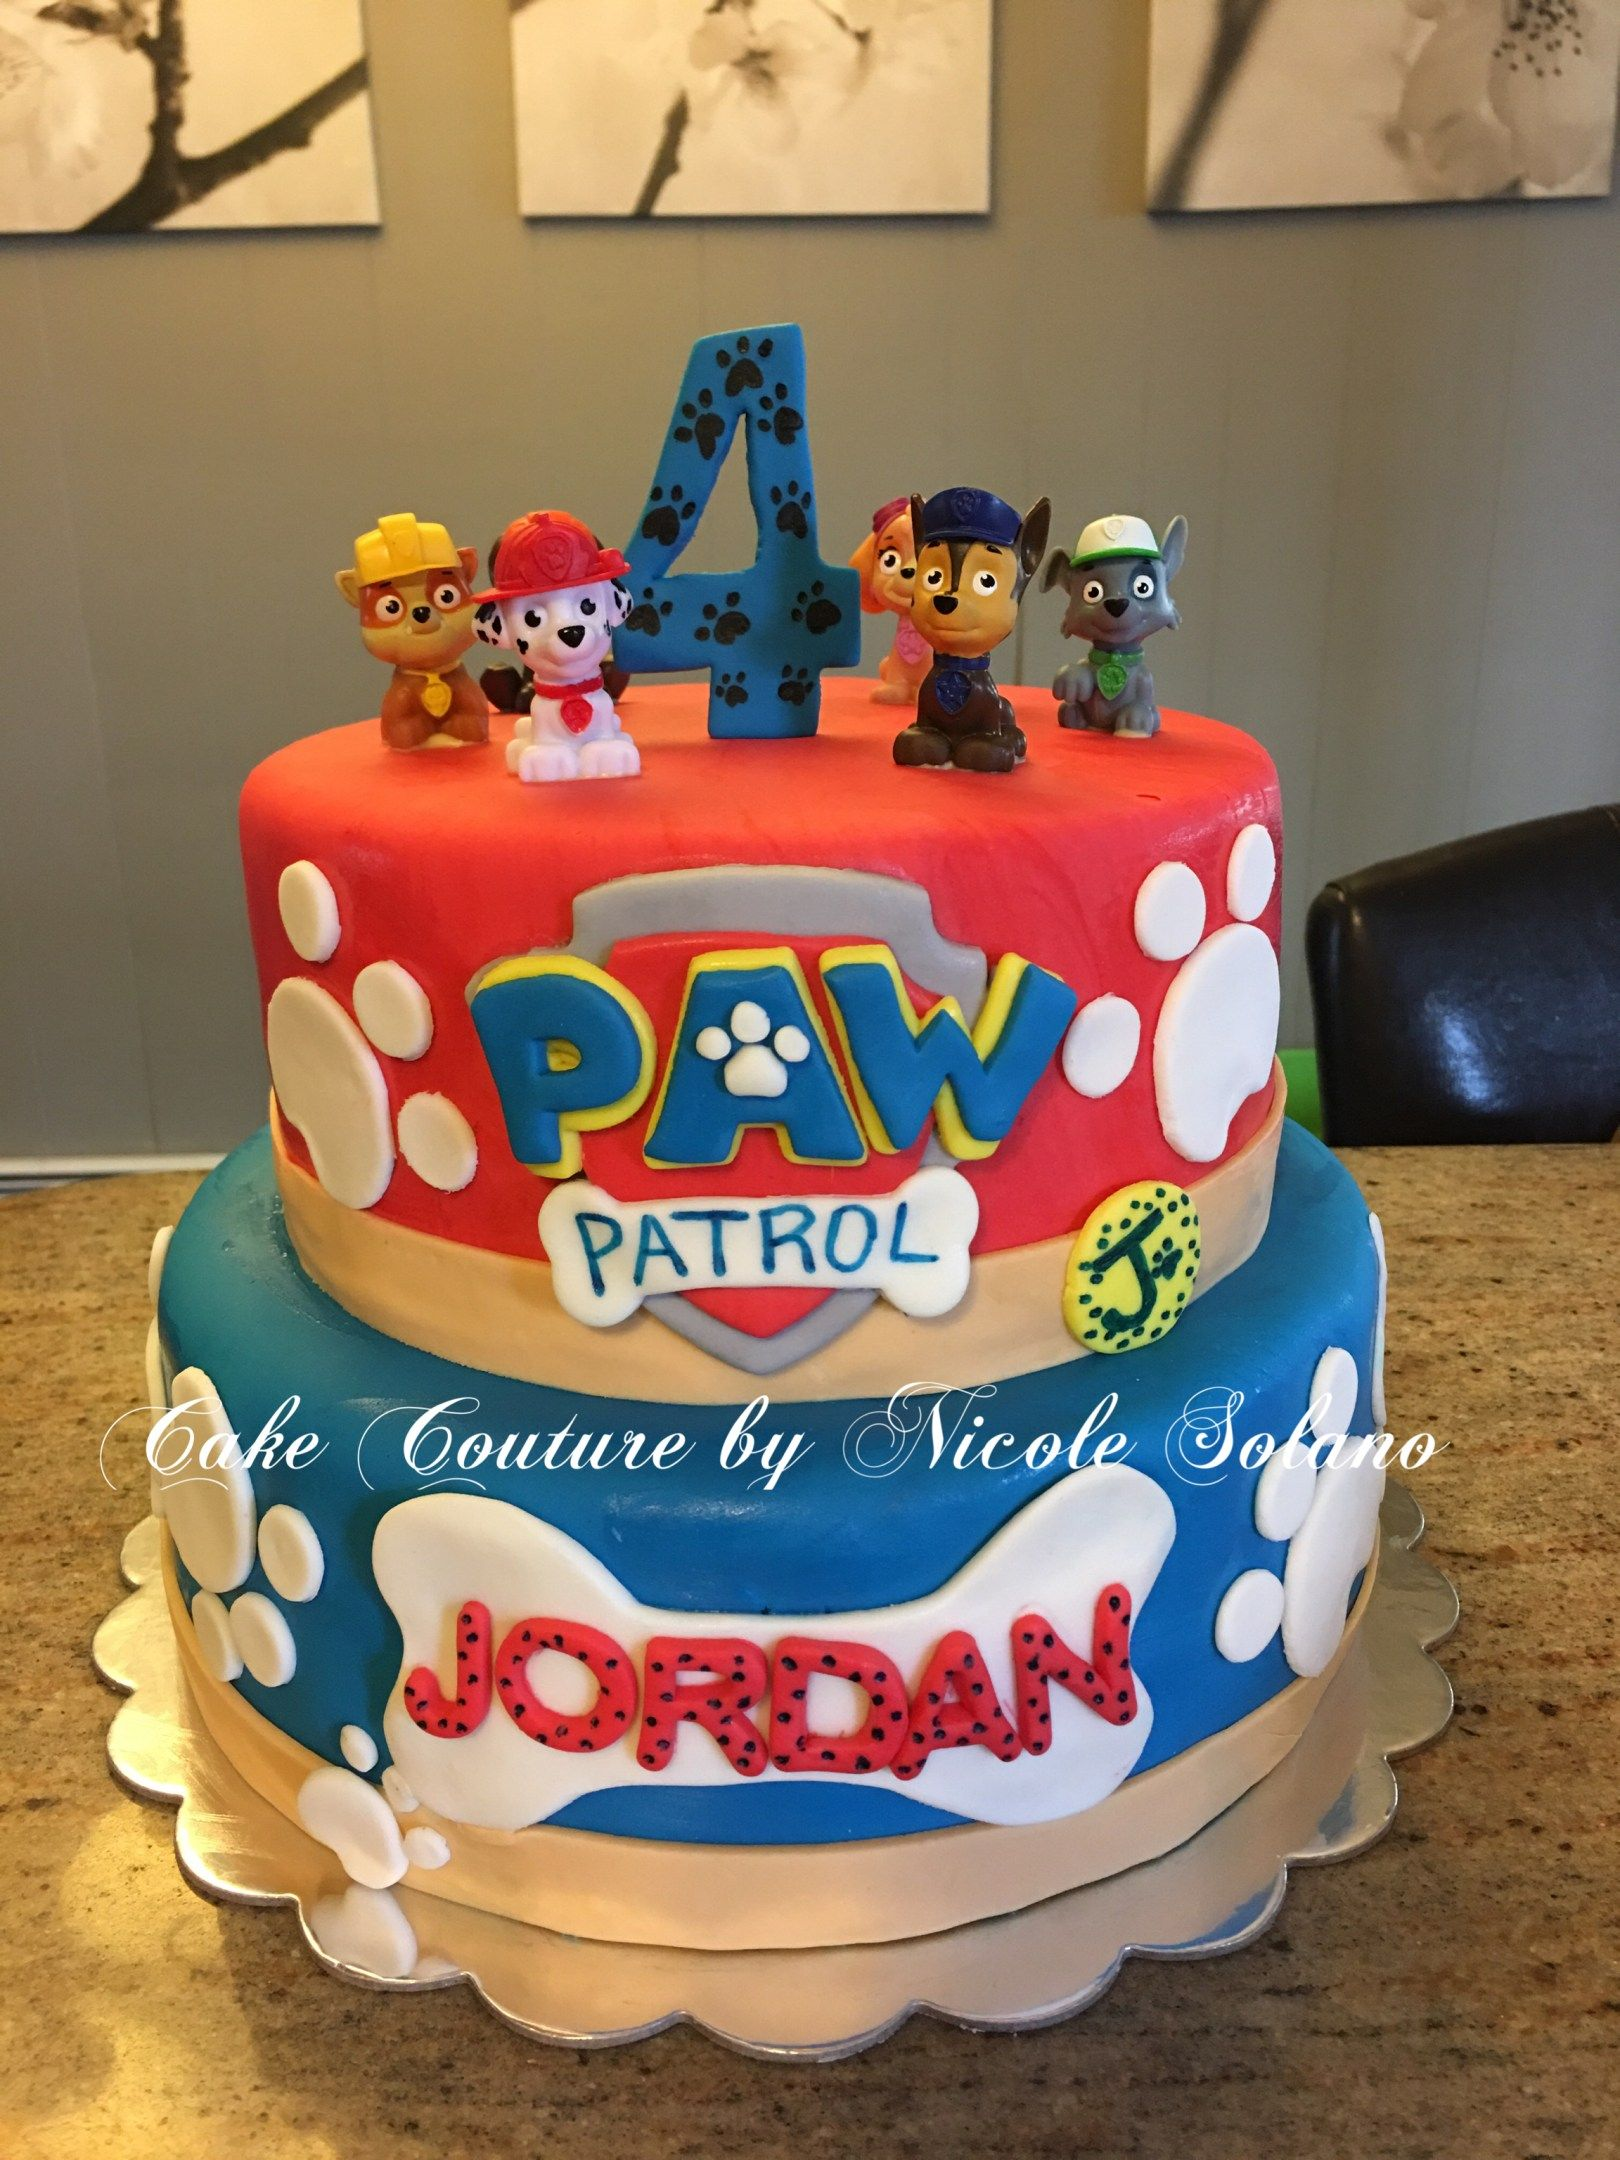 32 Inspiration Photo Of Paw Patrol Birthday Cake Ideas With